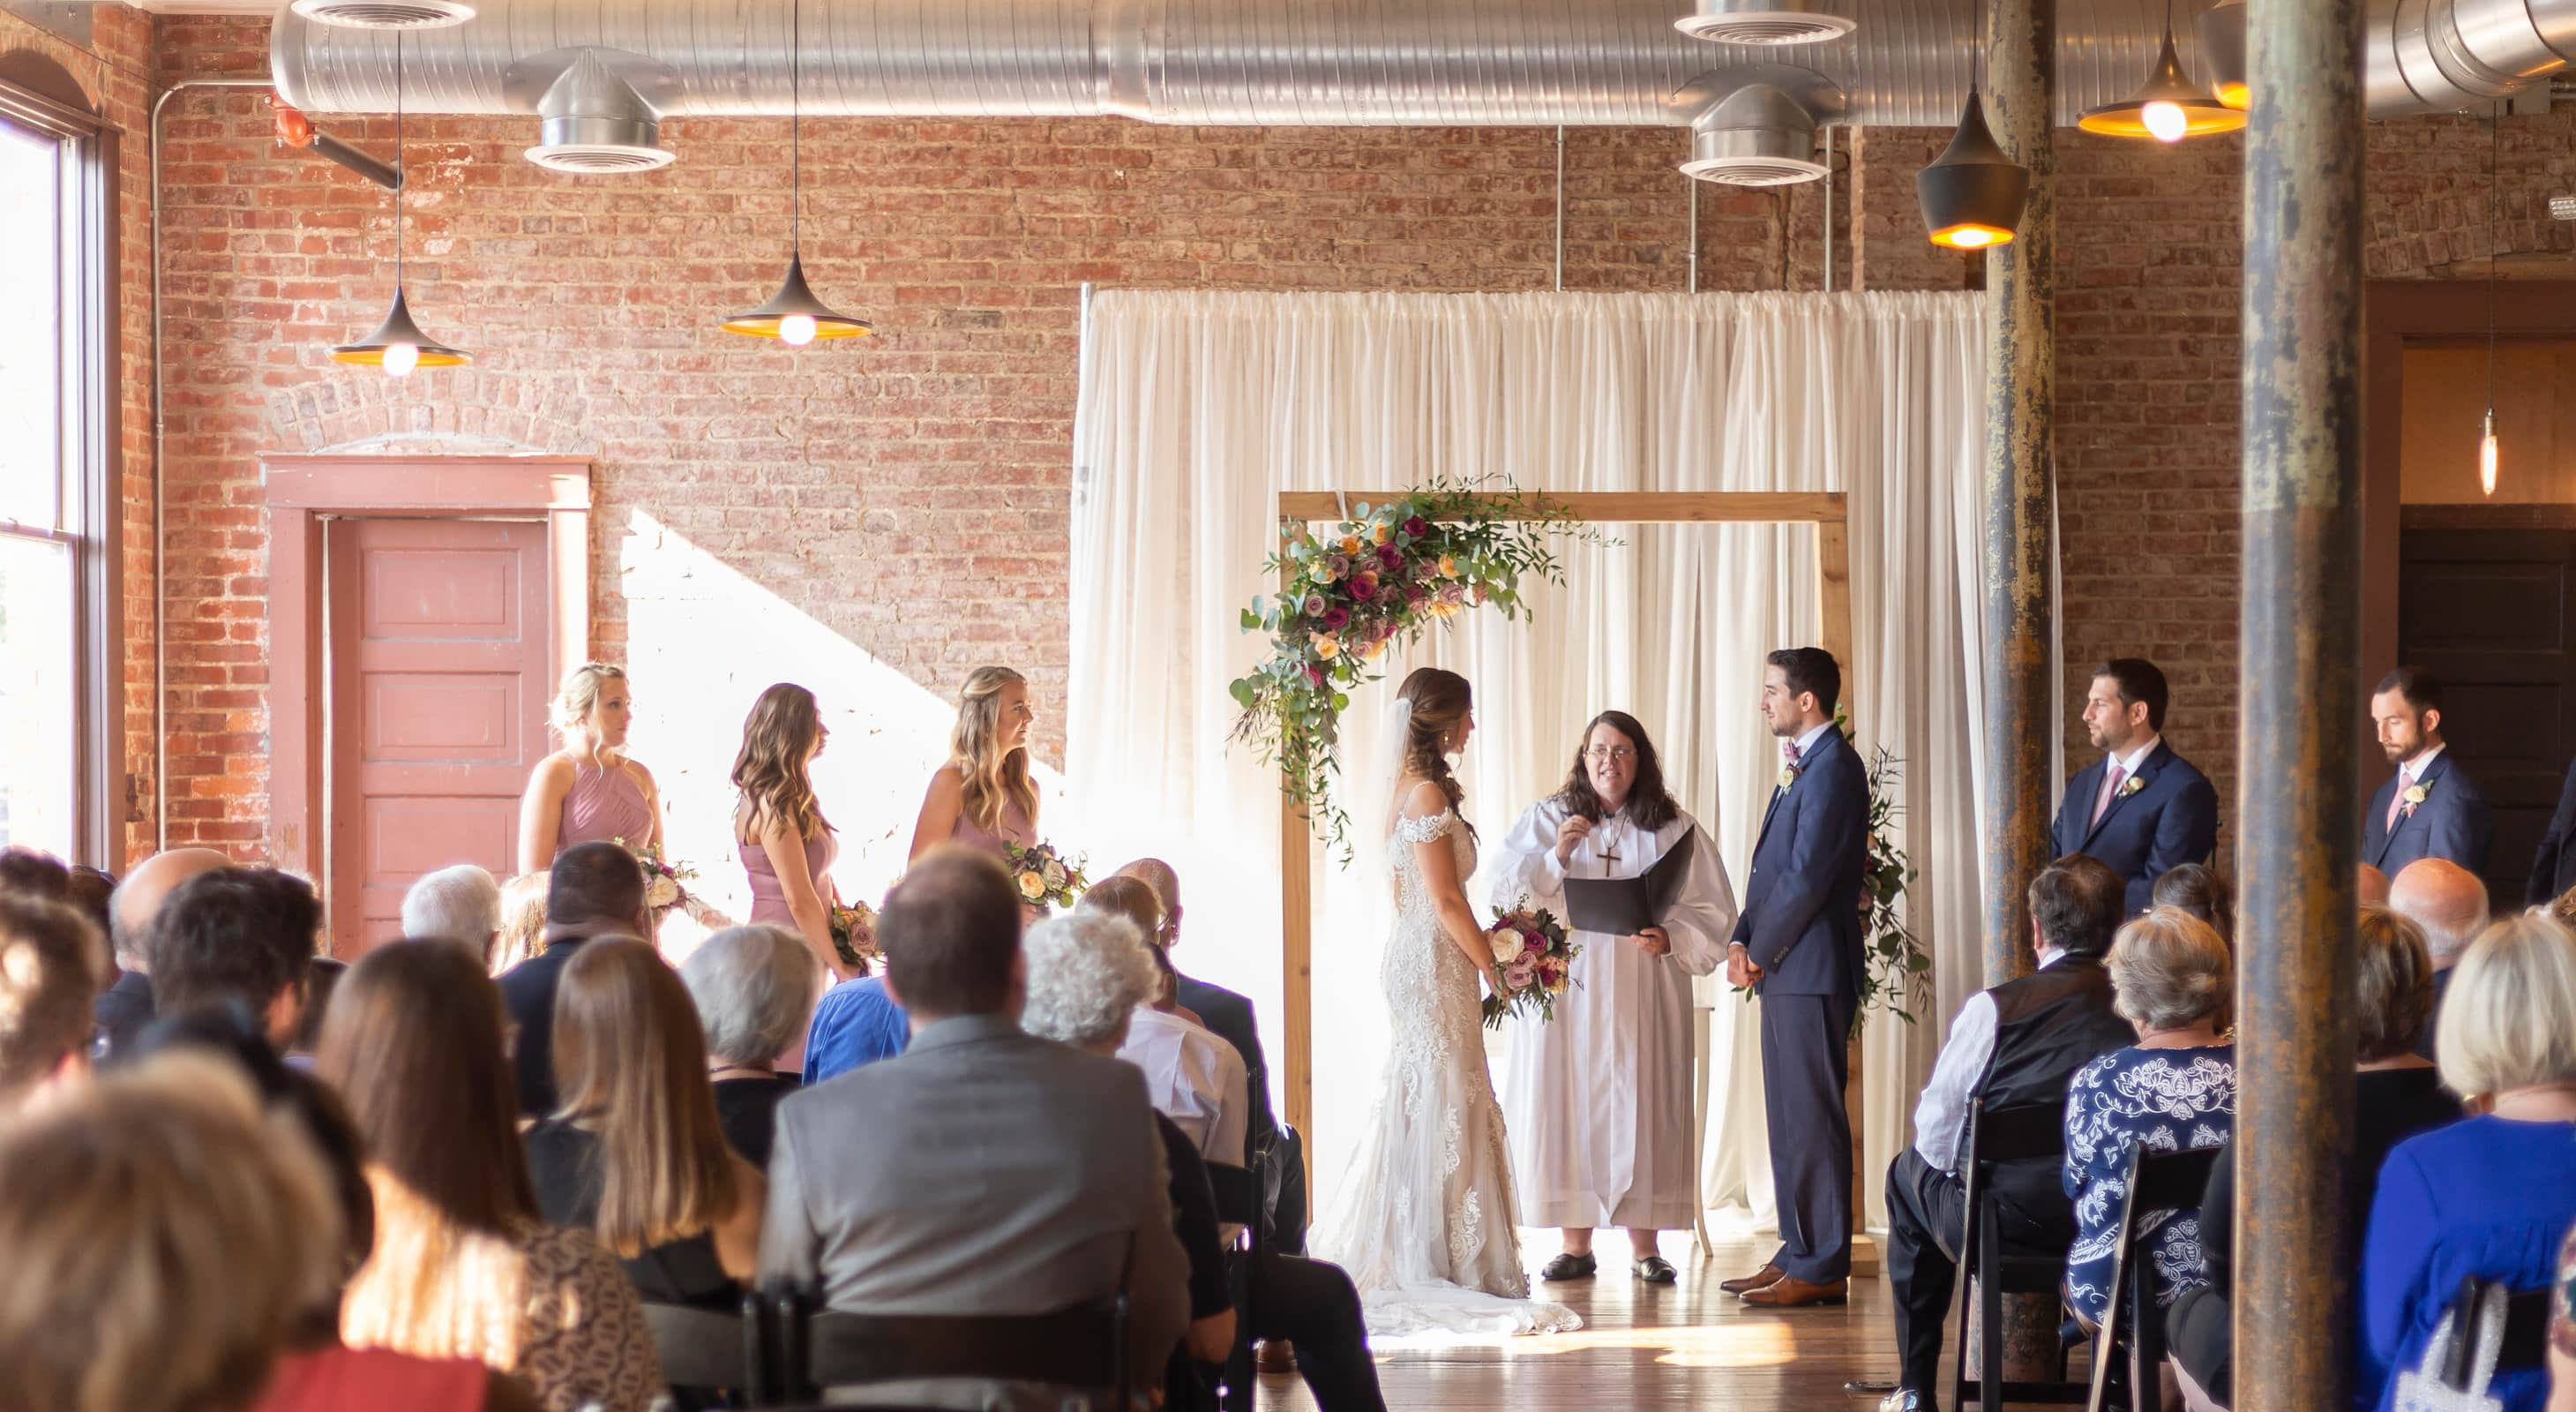 wedding ceremony at our industrial chic Indianapolis wedding venue